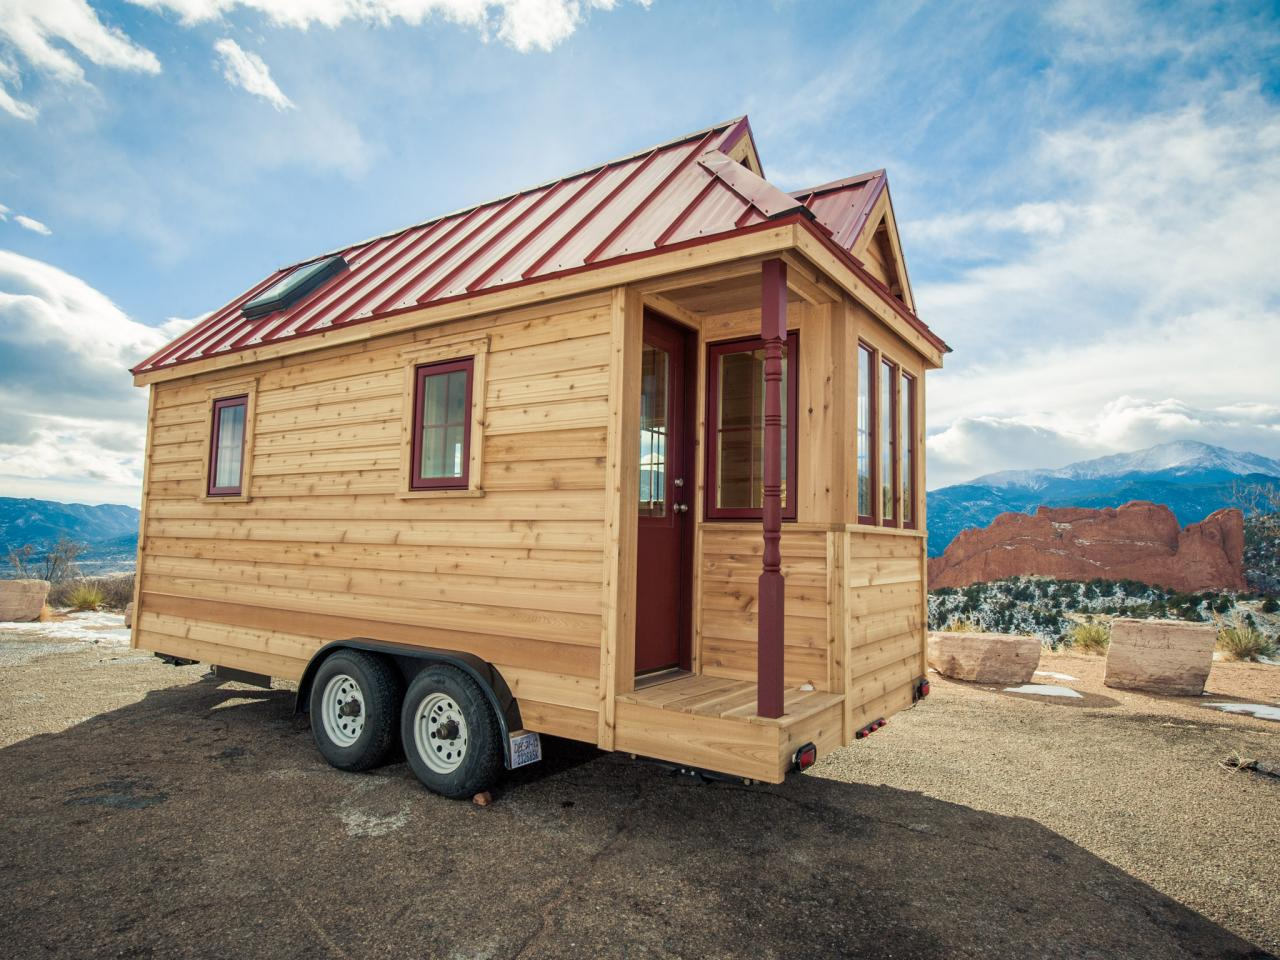 7 tiny homes to inspirer your inner traveler hgtv 39 s Tiny little houses on wheels